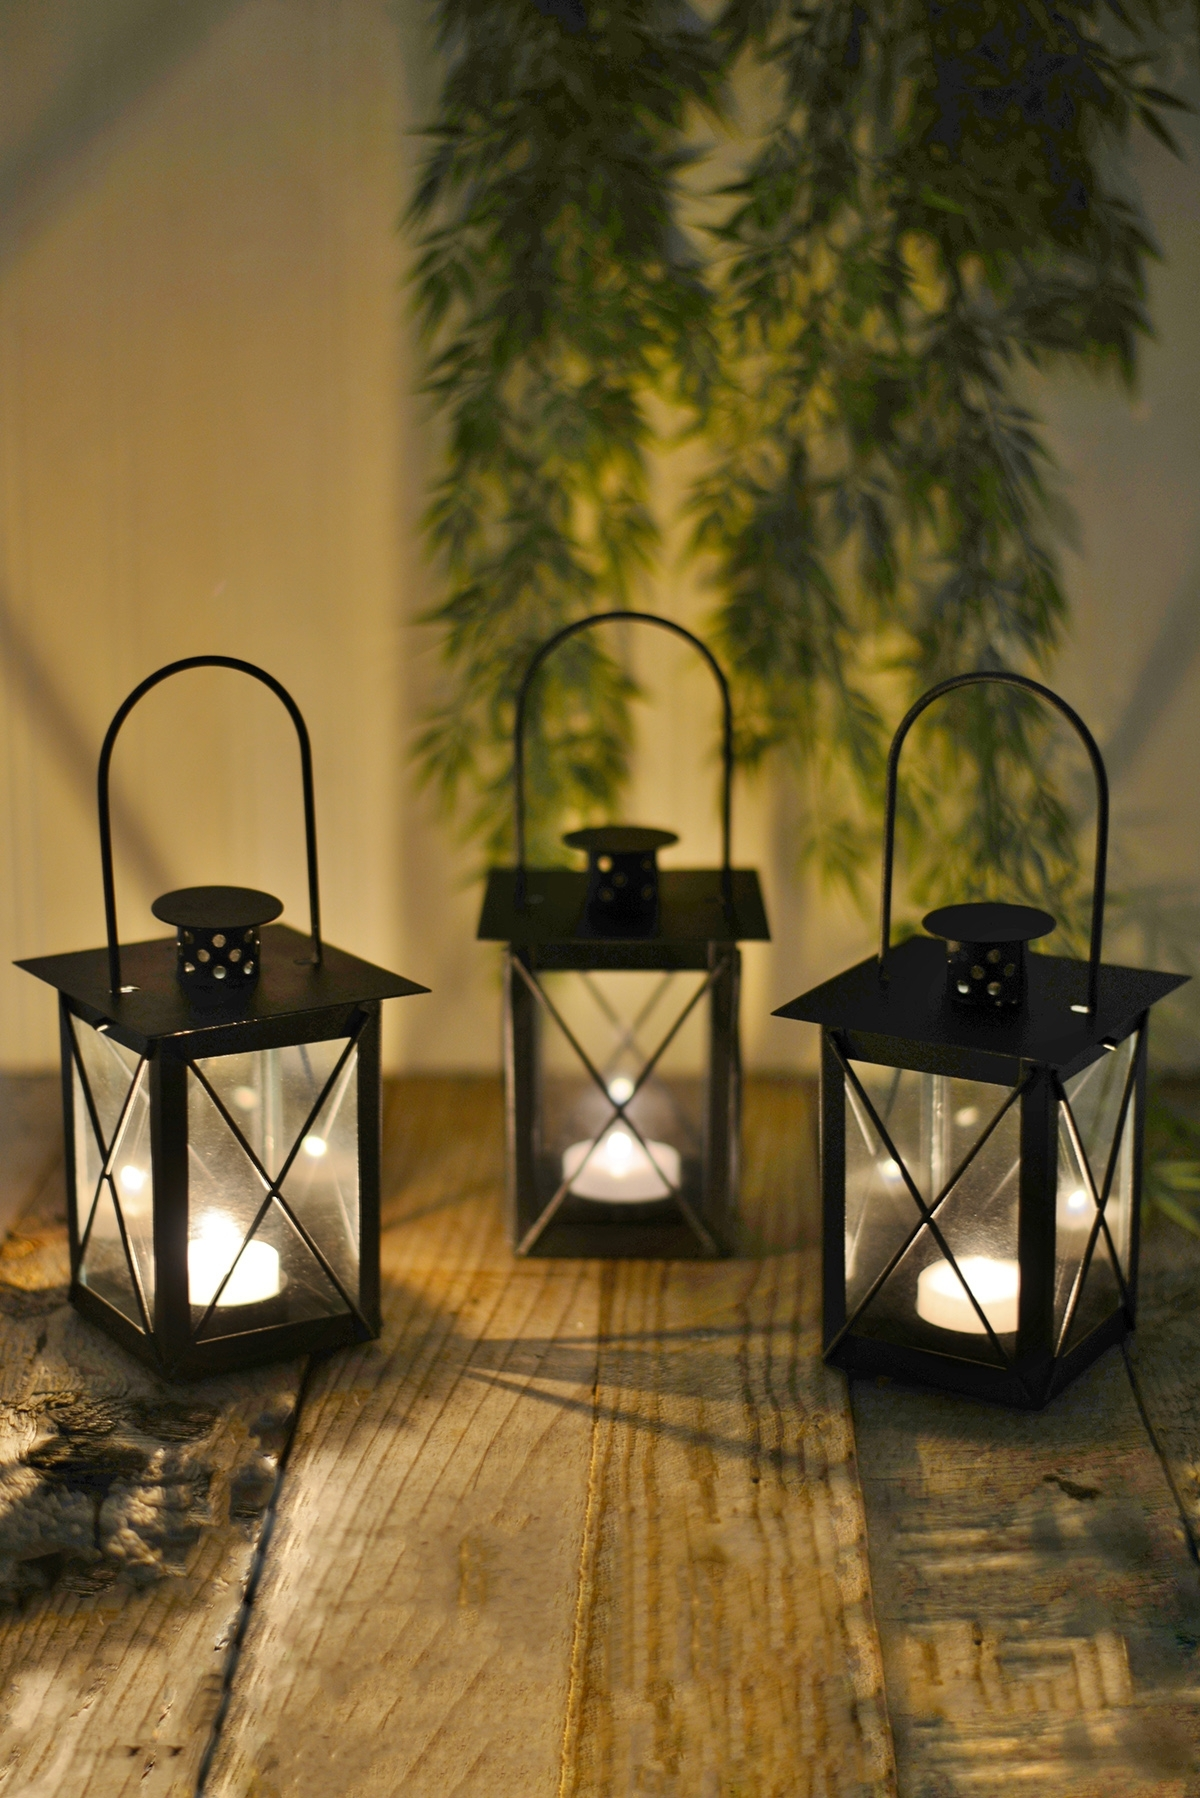 Outdoor Tea Light Lanterns - Outdoor Lighting Ideas inside Outdoor Tea Light Lanterns (Image 12 of 20)